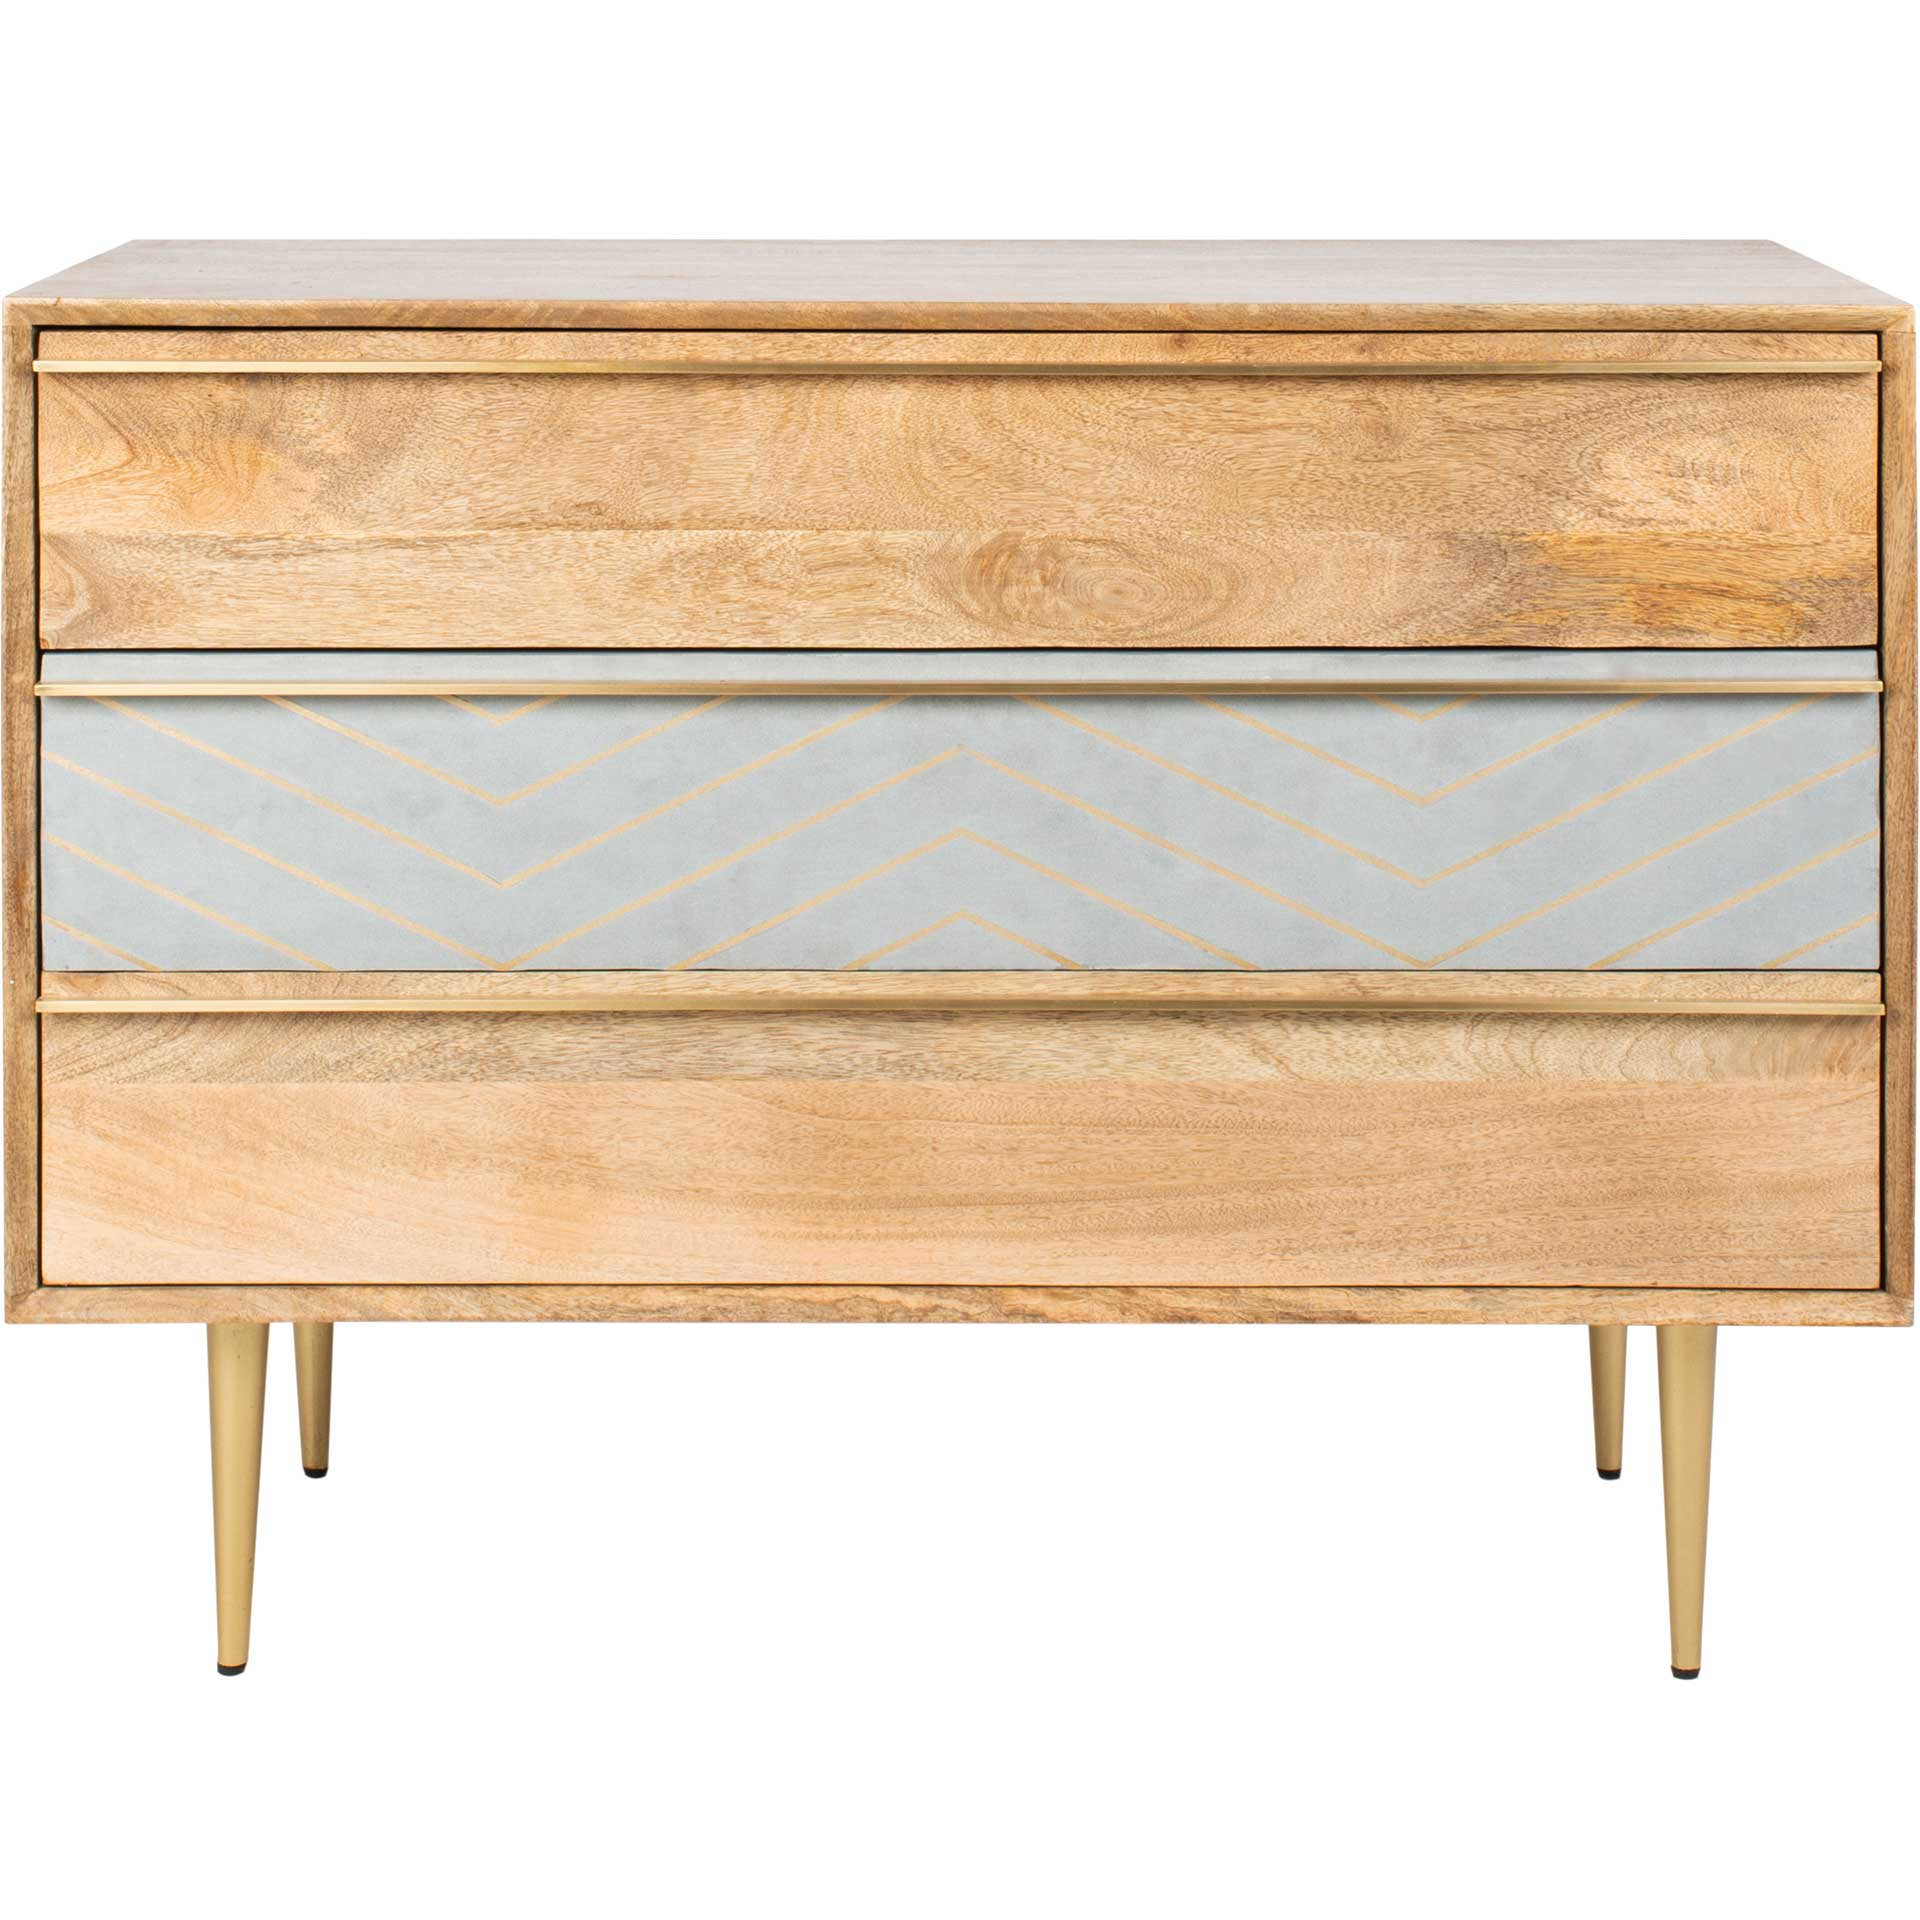 Tieton Cement Chest Natural Mango/Brass/Cement